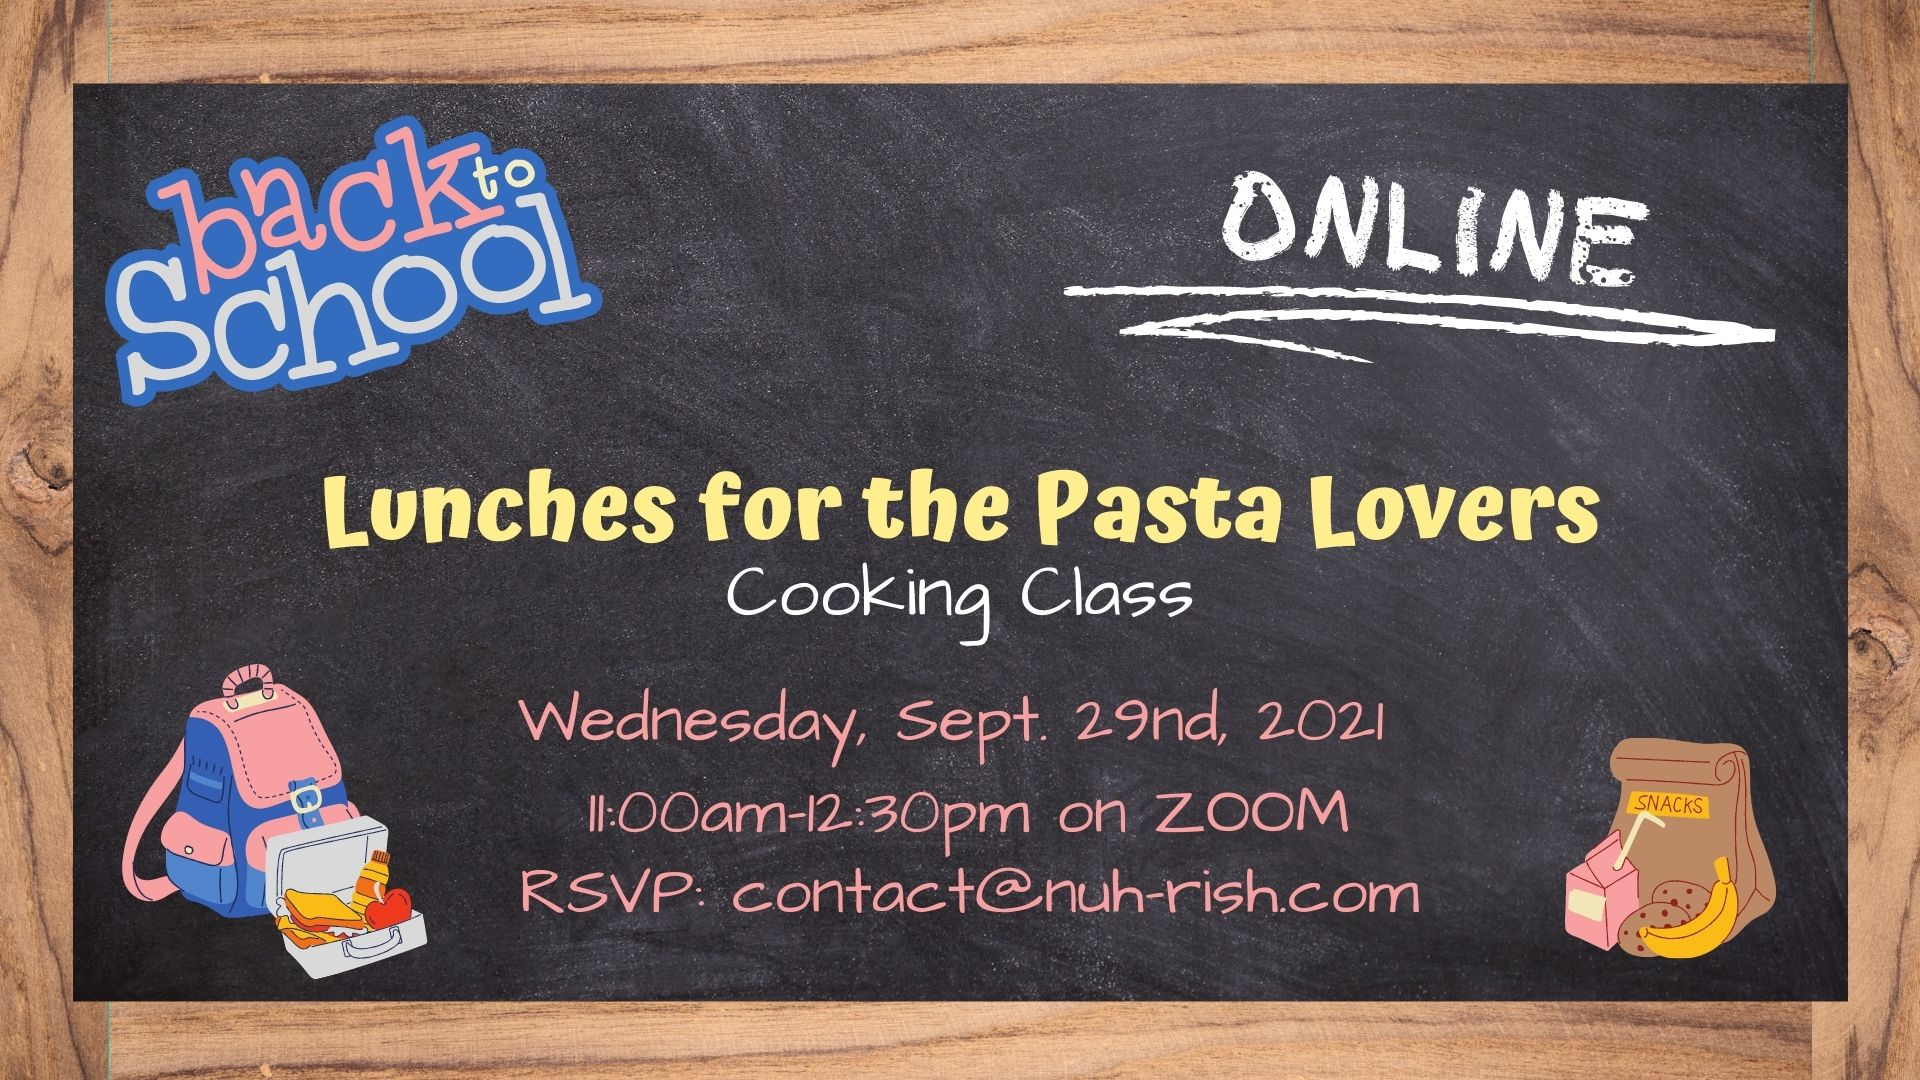 Back-2-School Pasta Lunches